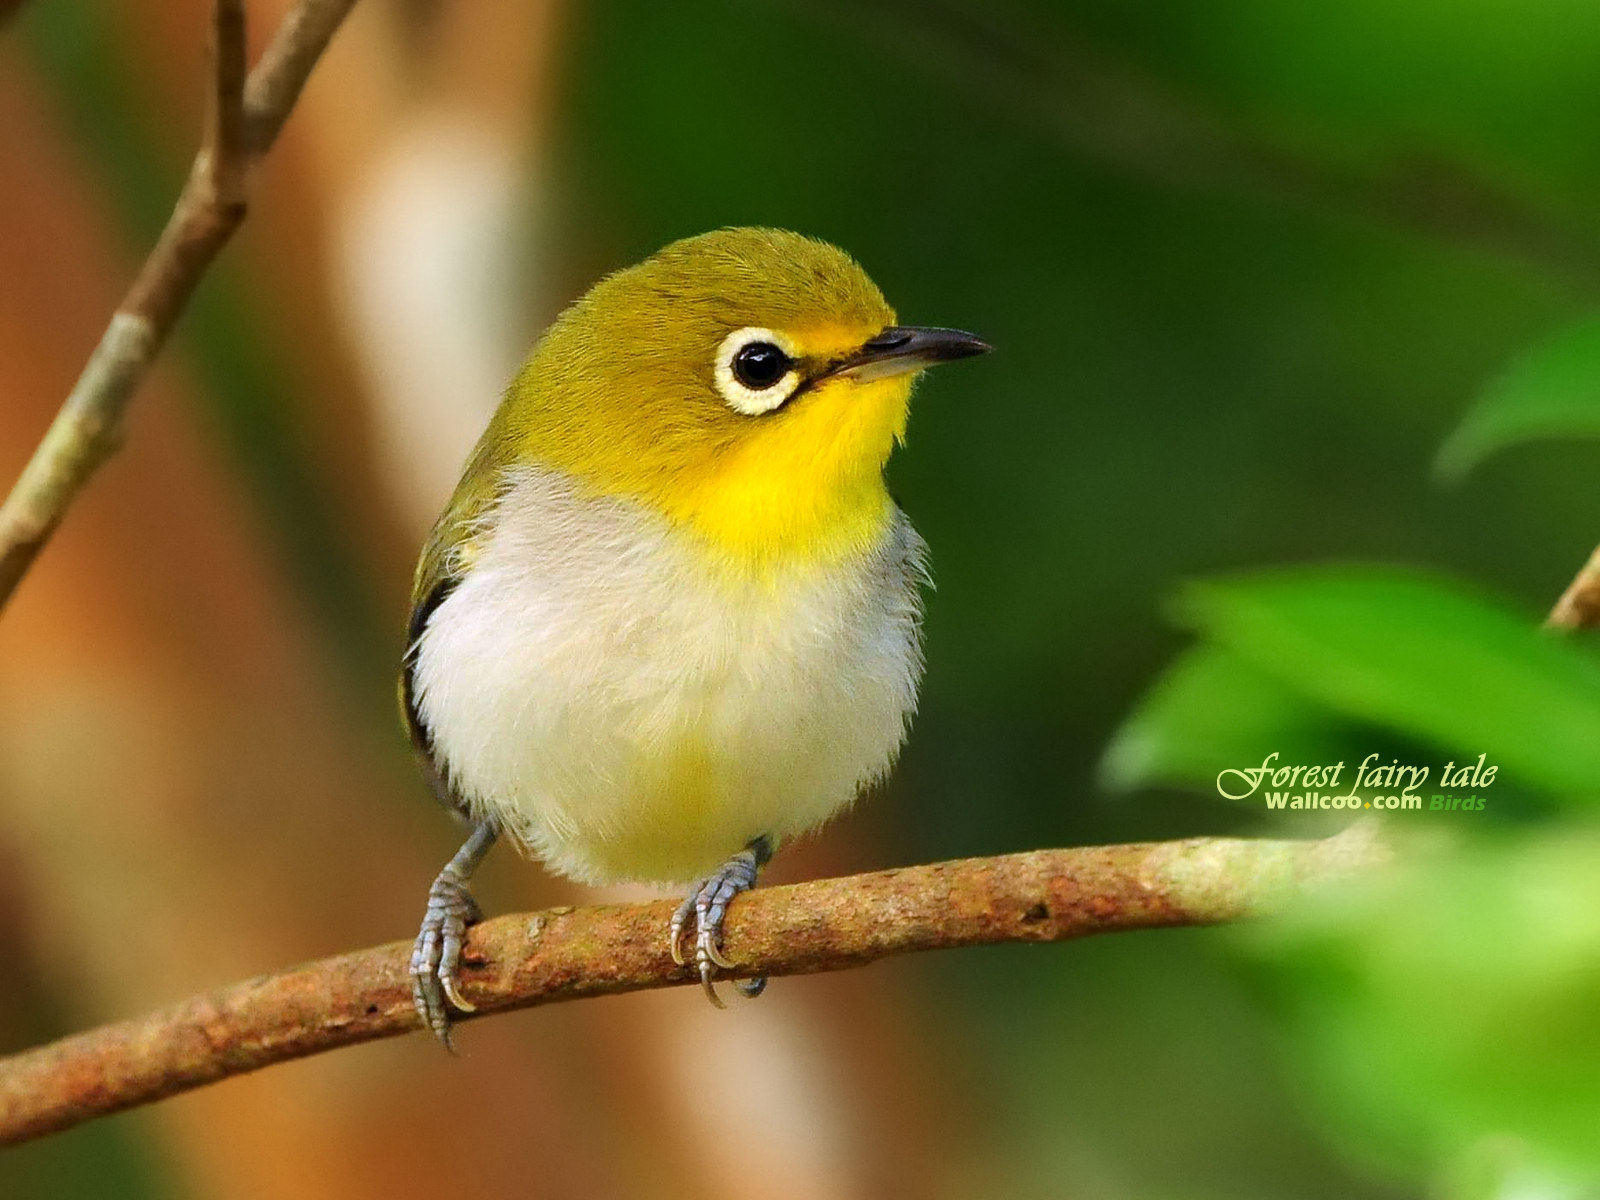 Cute bird wallpaper 19393